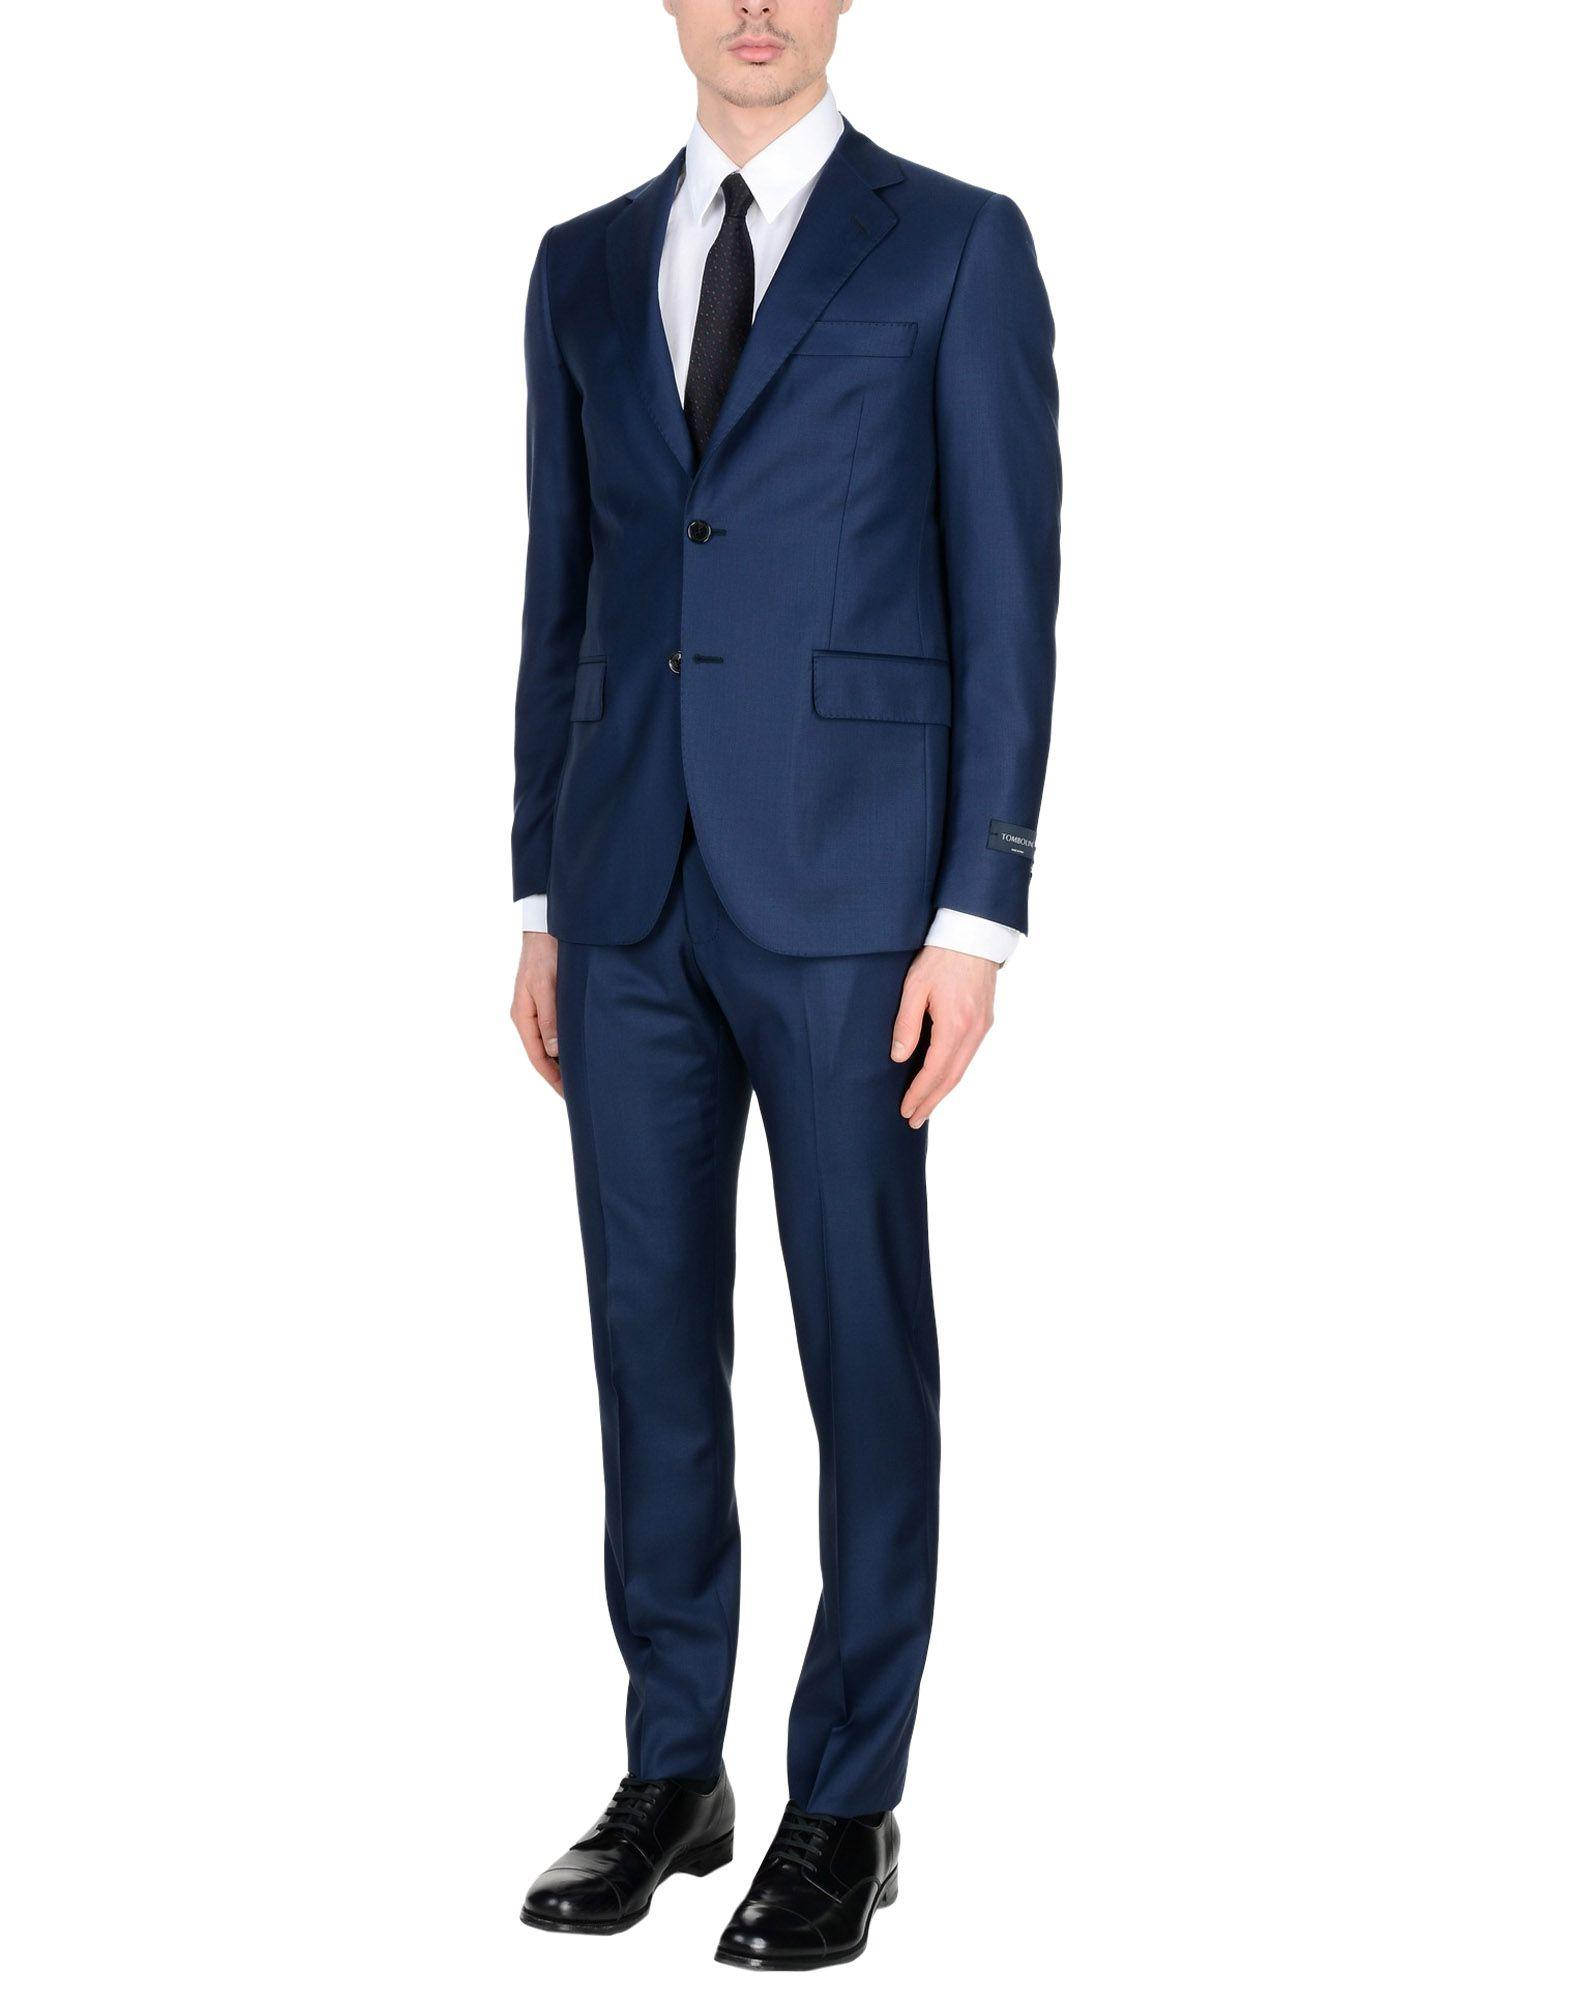 Tombolini Suits In Blue